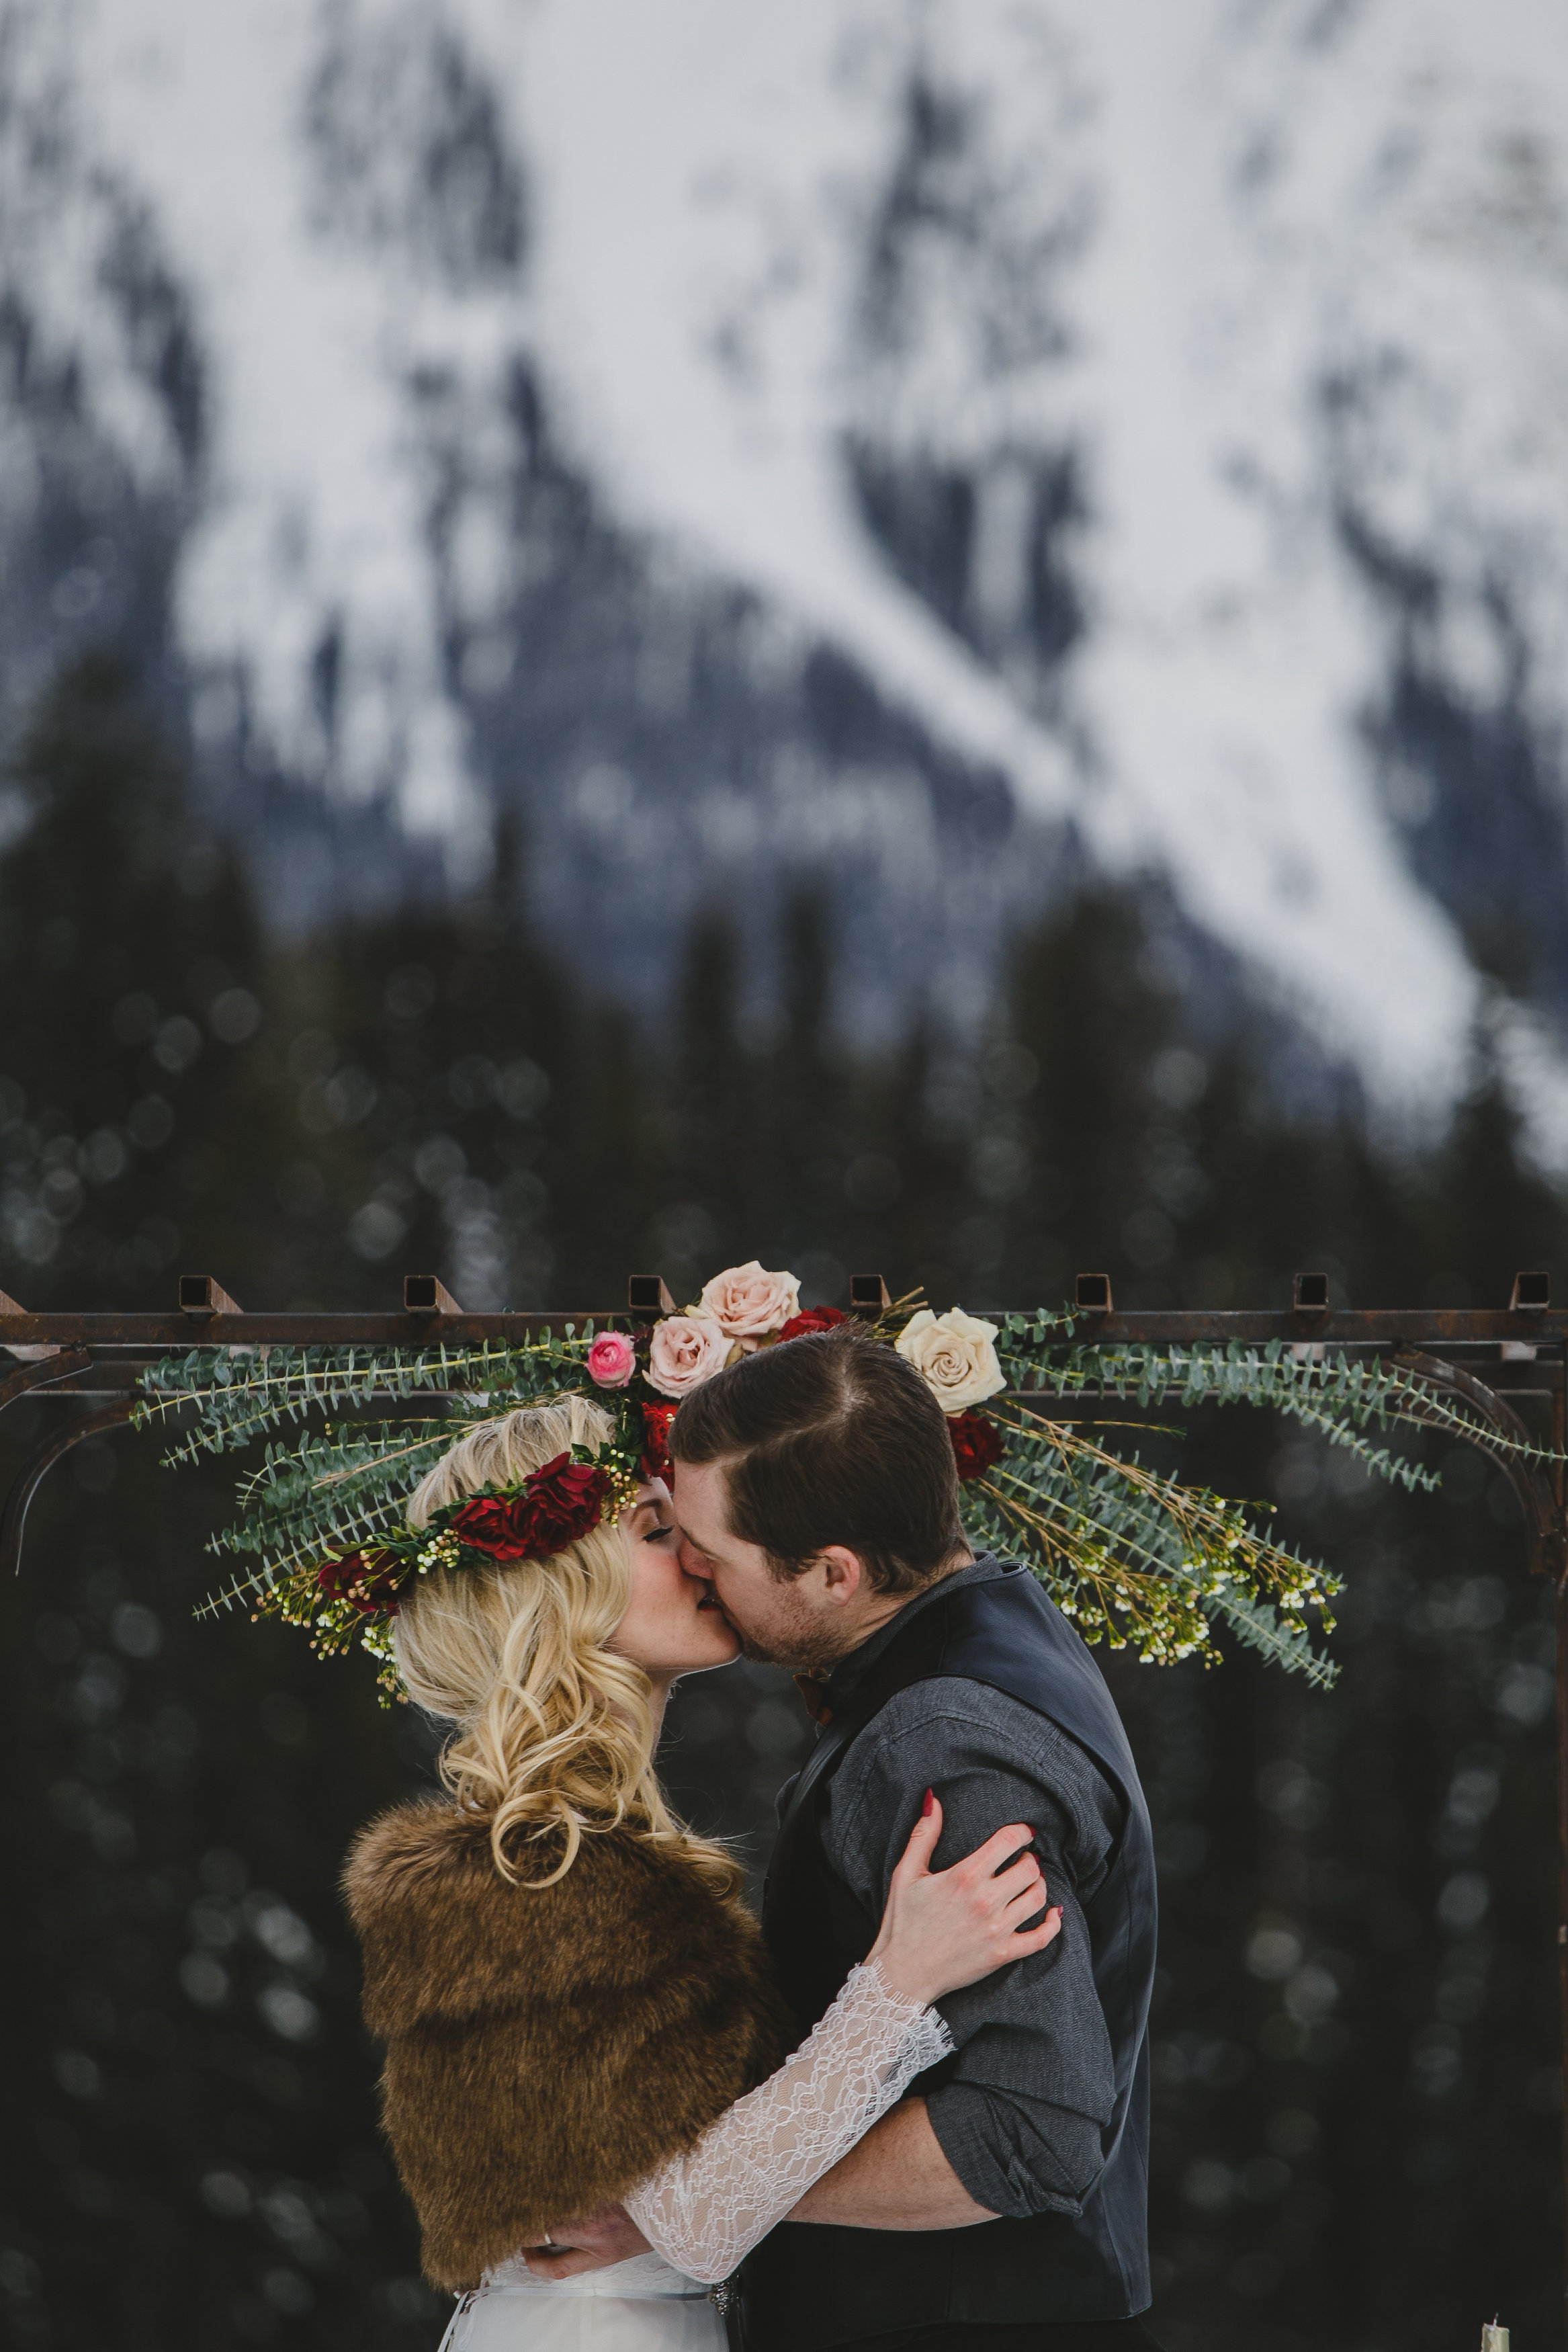 D-EmeraldLake-RockyMountainWedding-Lolo&Noa-18.jpg